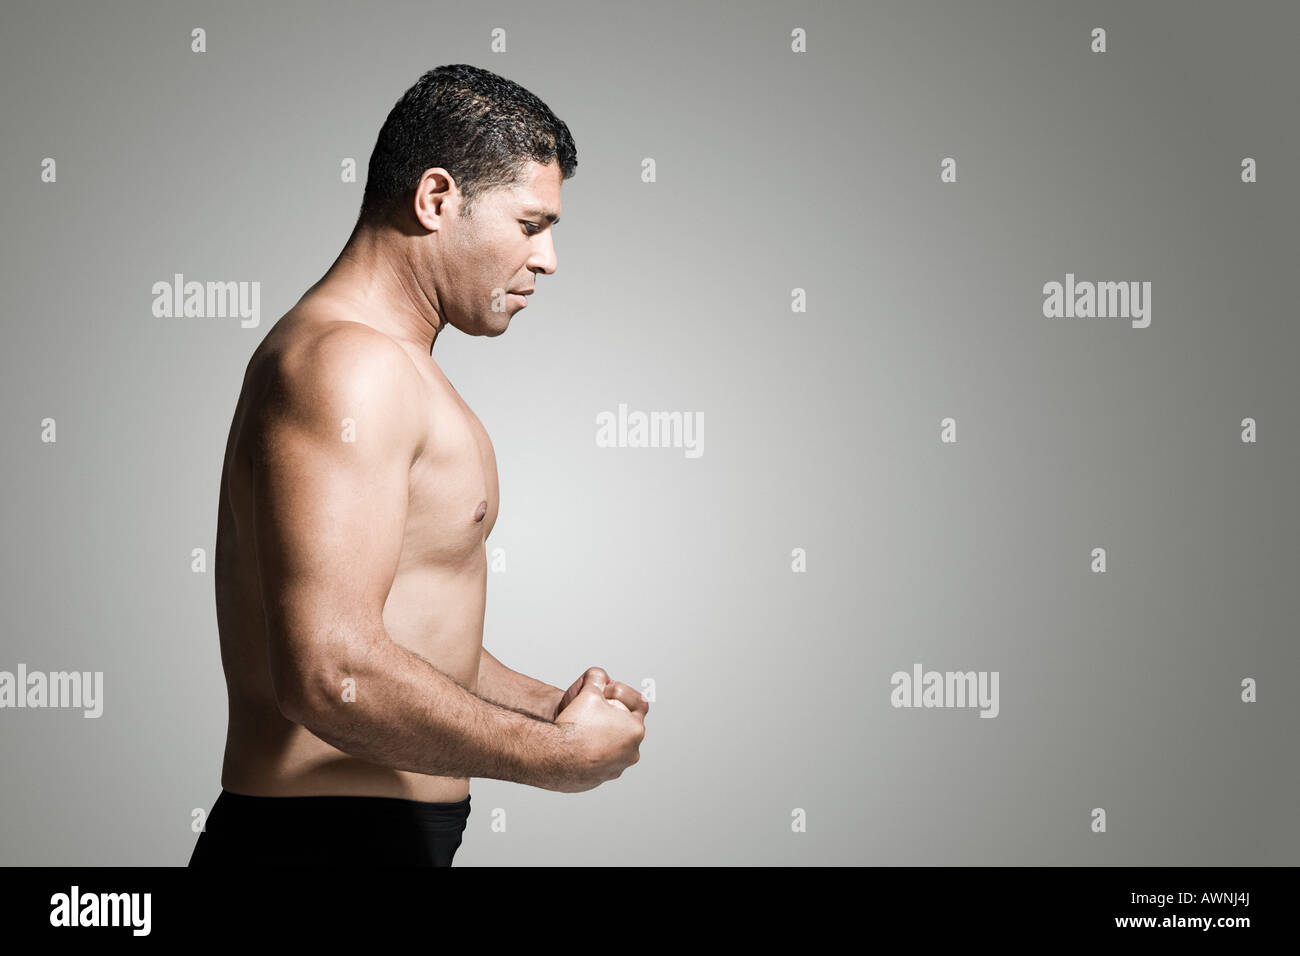 Profile of a muscular man - Stock Image